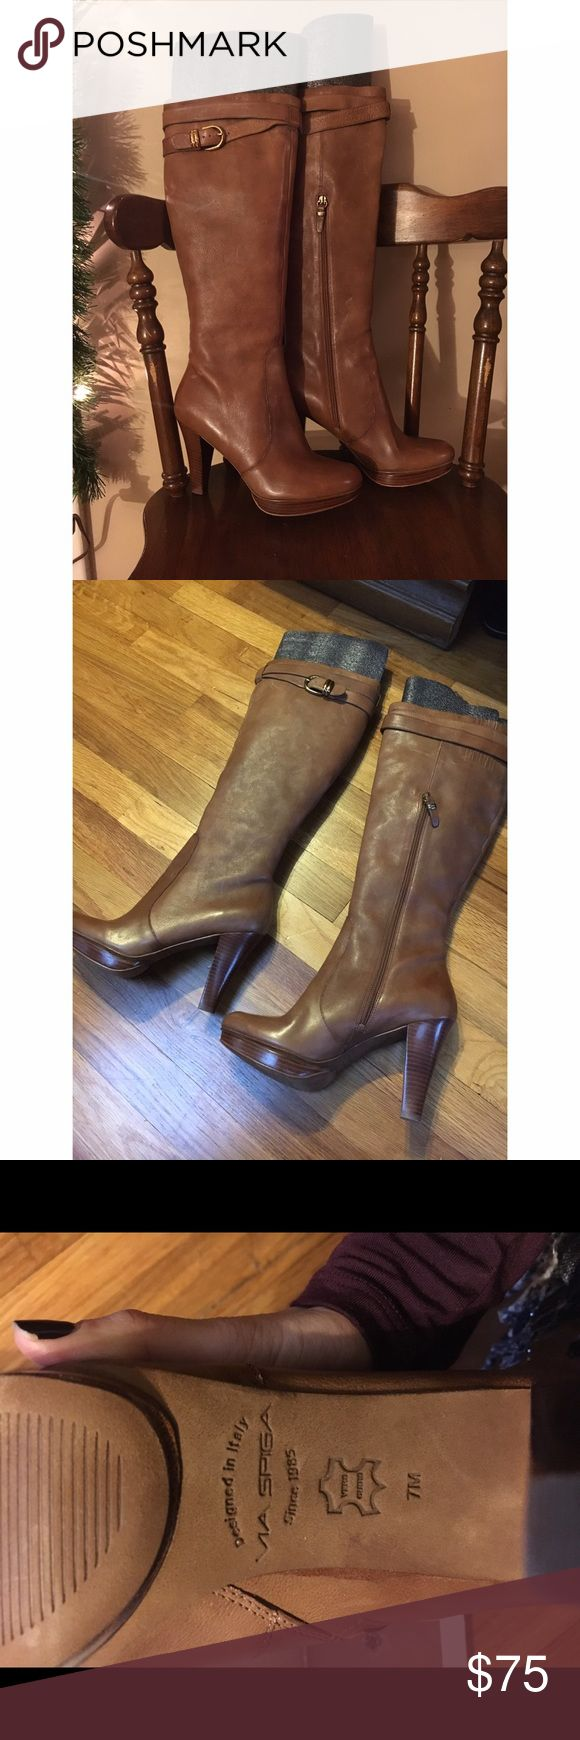 VIA SPIGA tan leather high heel platform boots Beautiful Italian leather boots.  Never worn but do not have box.  Great neutral color that can go with almost any outfit! Via Spiga Shoes Heeled Boots